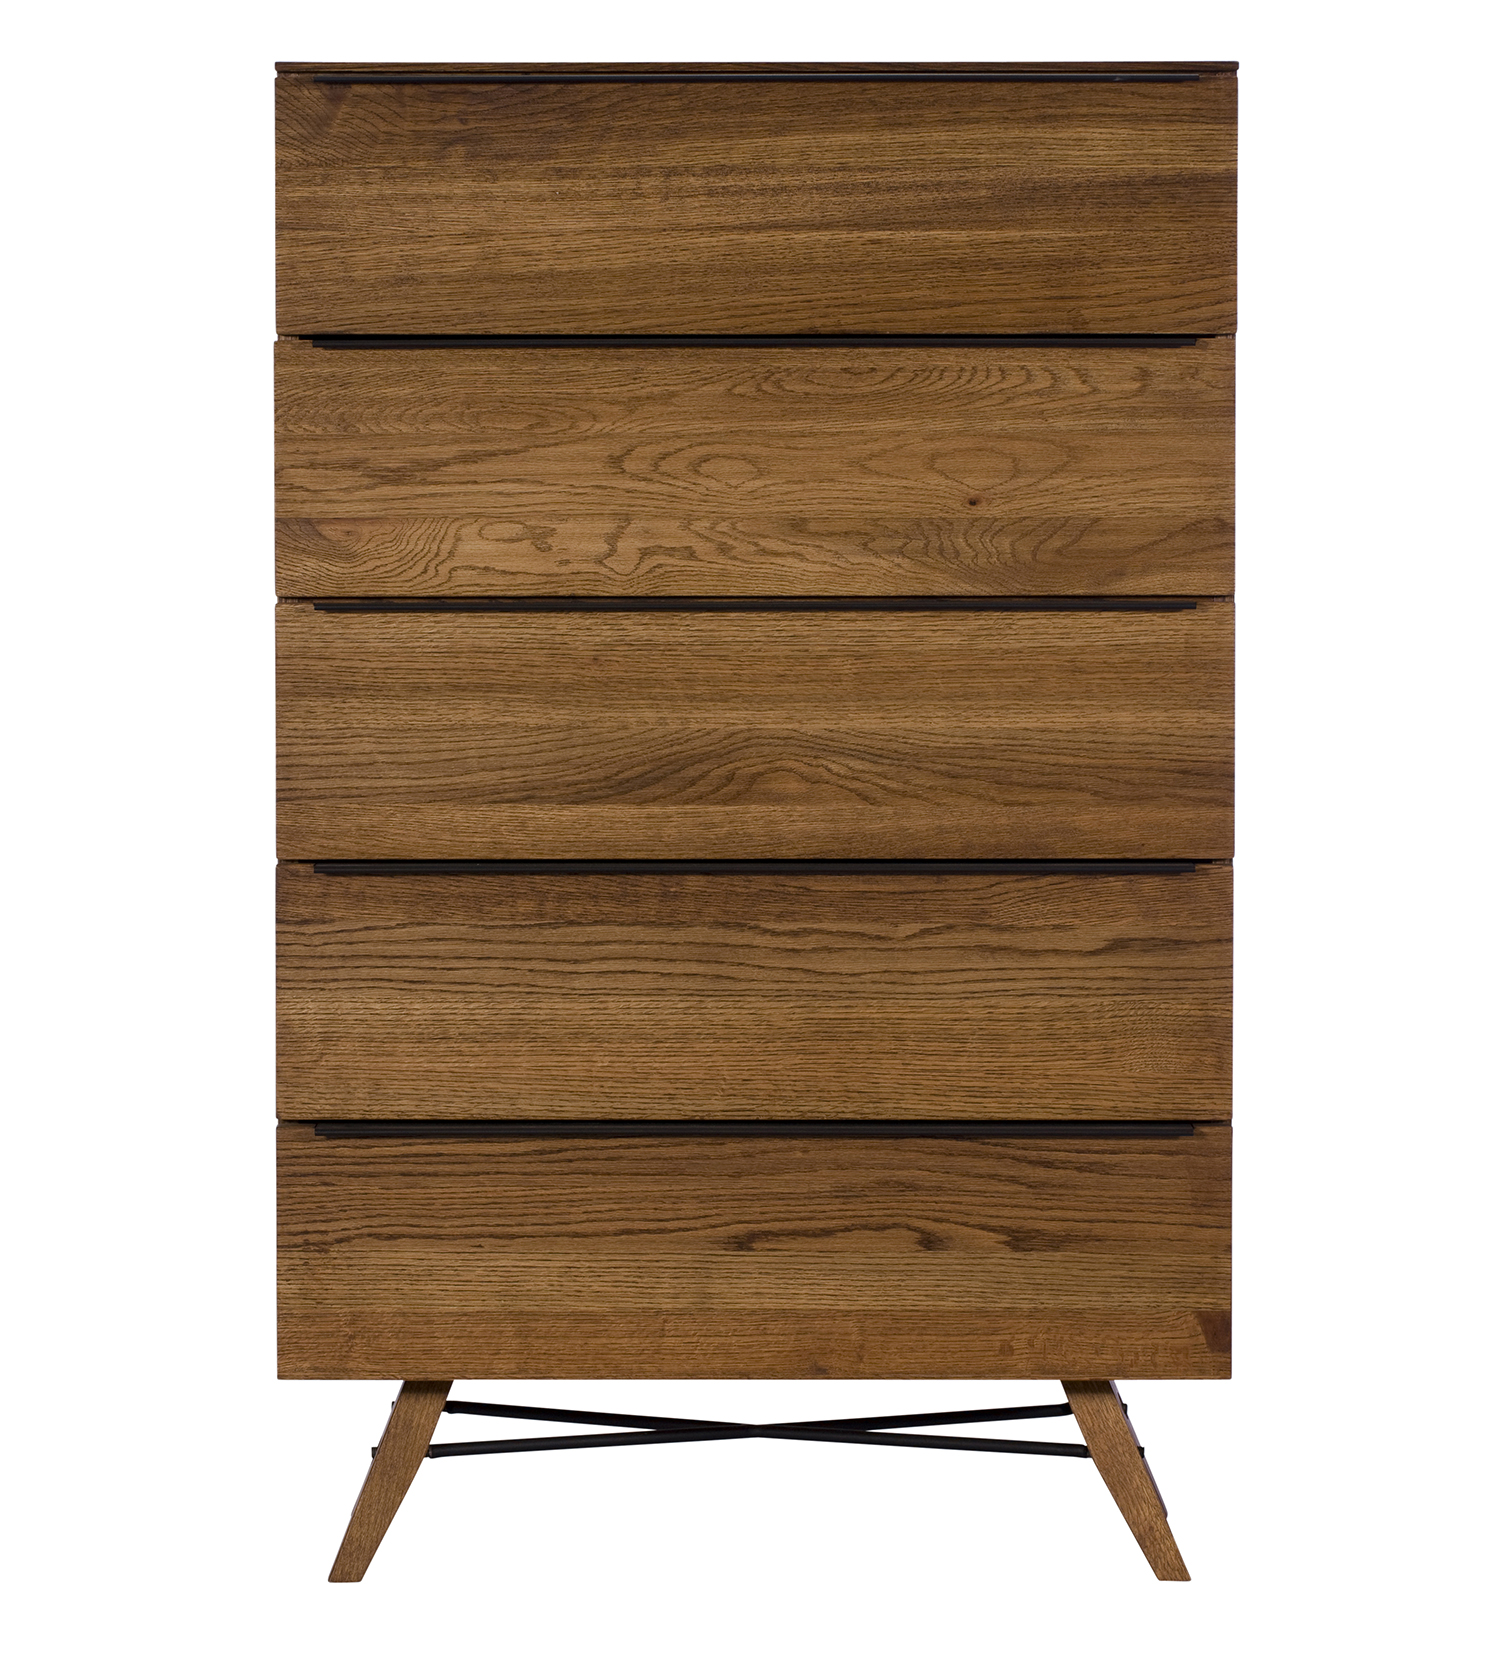 Oslo 1 5 Drawer Tall Chest RN06 1